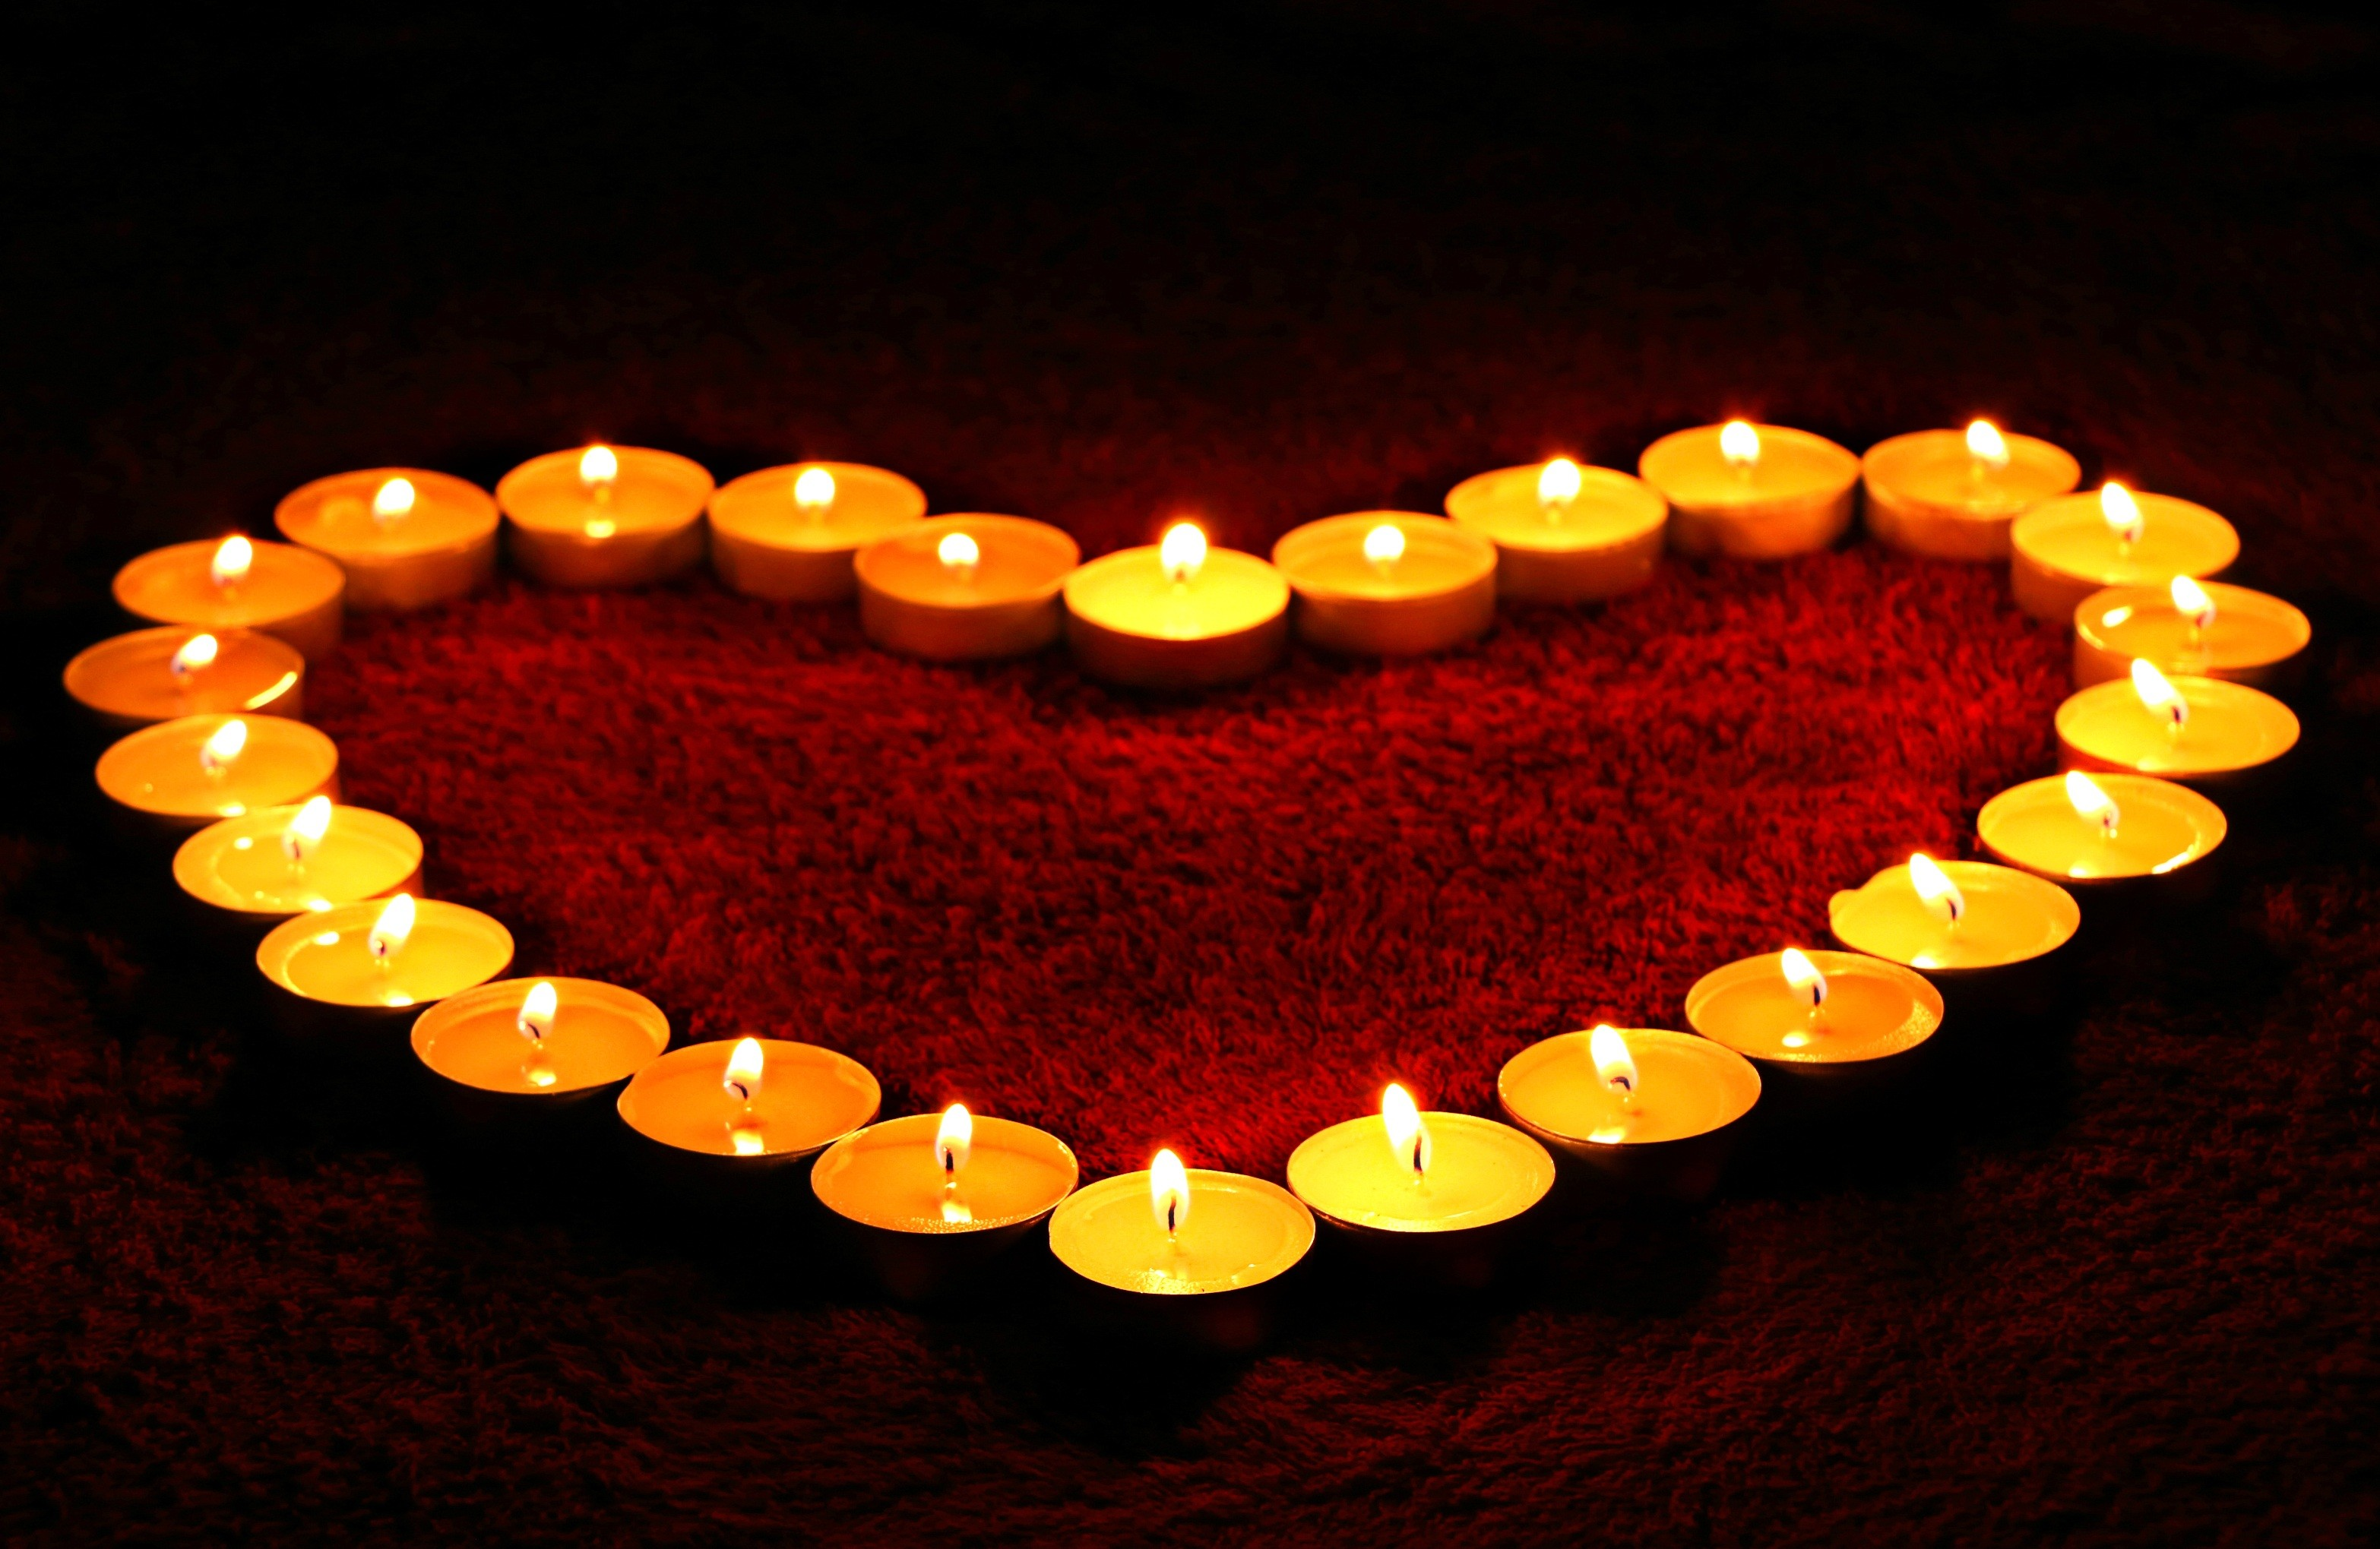 3132x2039 Love heart, Candle lights, HD